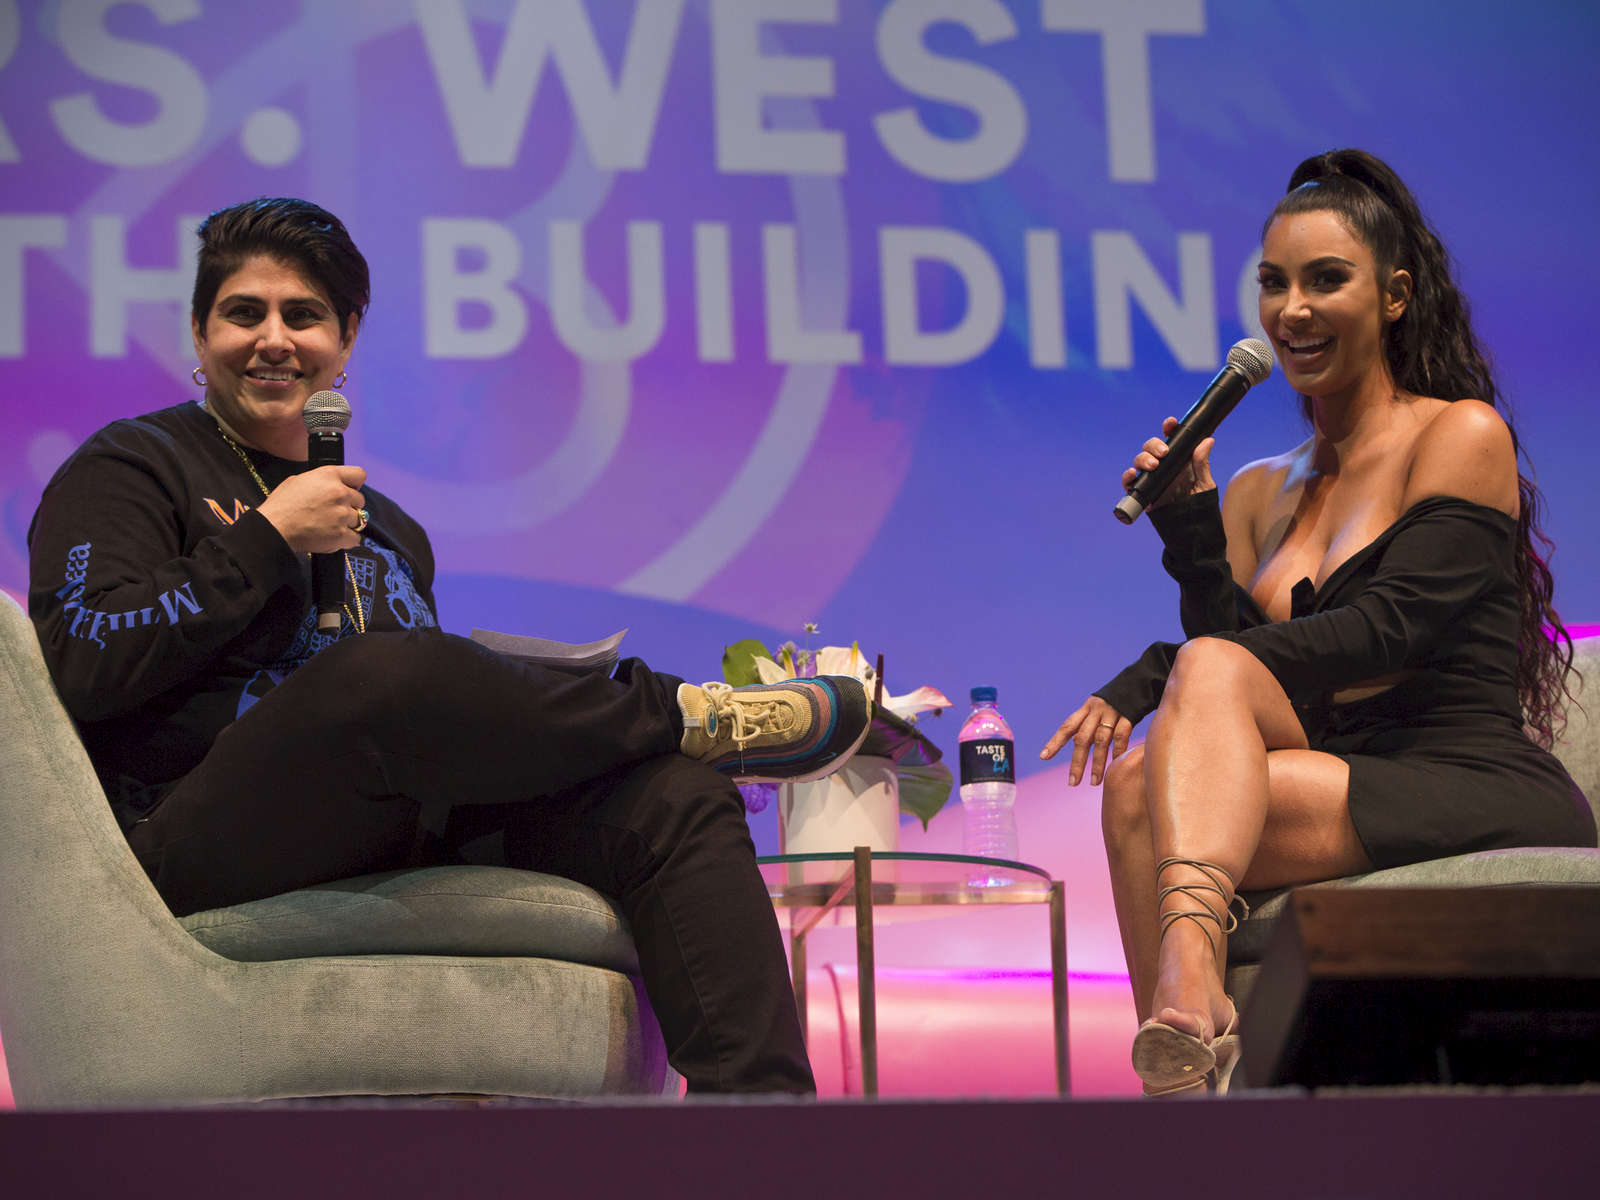 "The reality TV star was interviewed by Moj Mahdara, the chief executive officer of Beautycon. Ms. Mahdara says she first saw the potential in Beautycon in 2013, when she was looking for ""the next gen of QVC."""